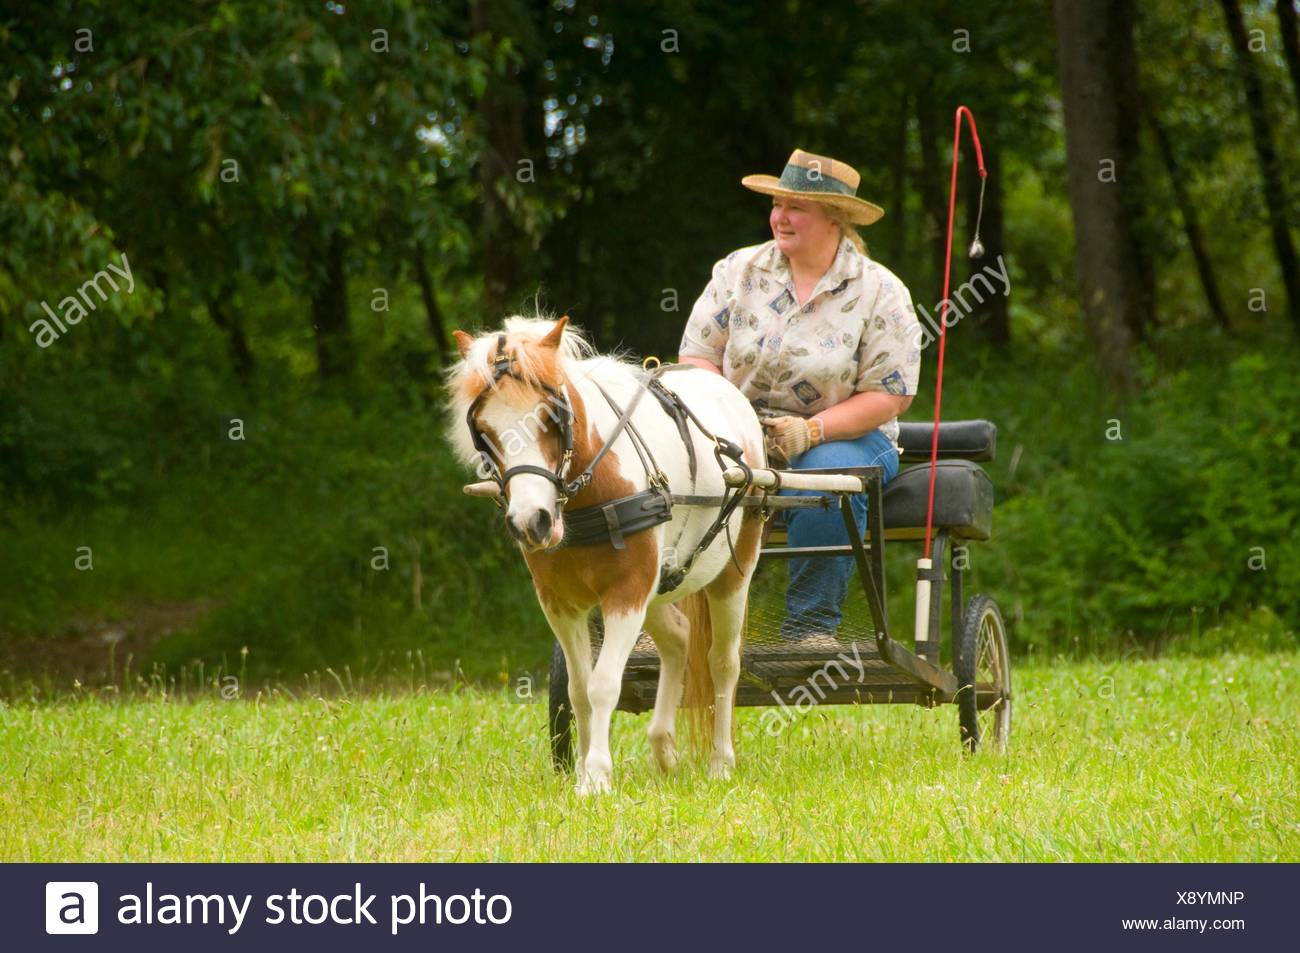 Miniature Horse Stock Photos   Miniature Horse Stock Images - Page 2 ... f320338c196d